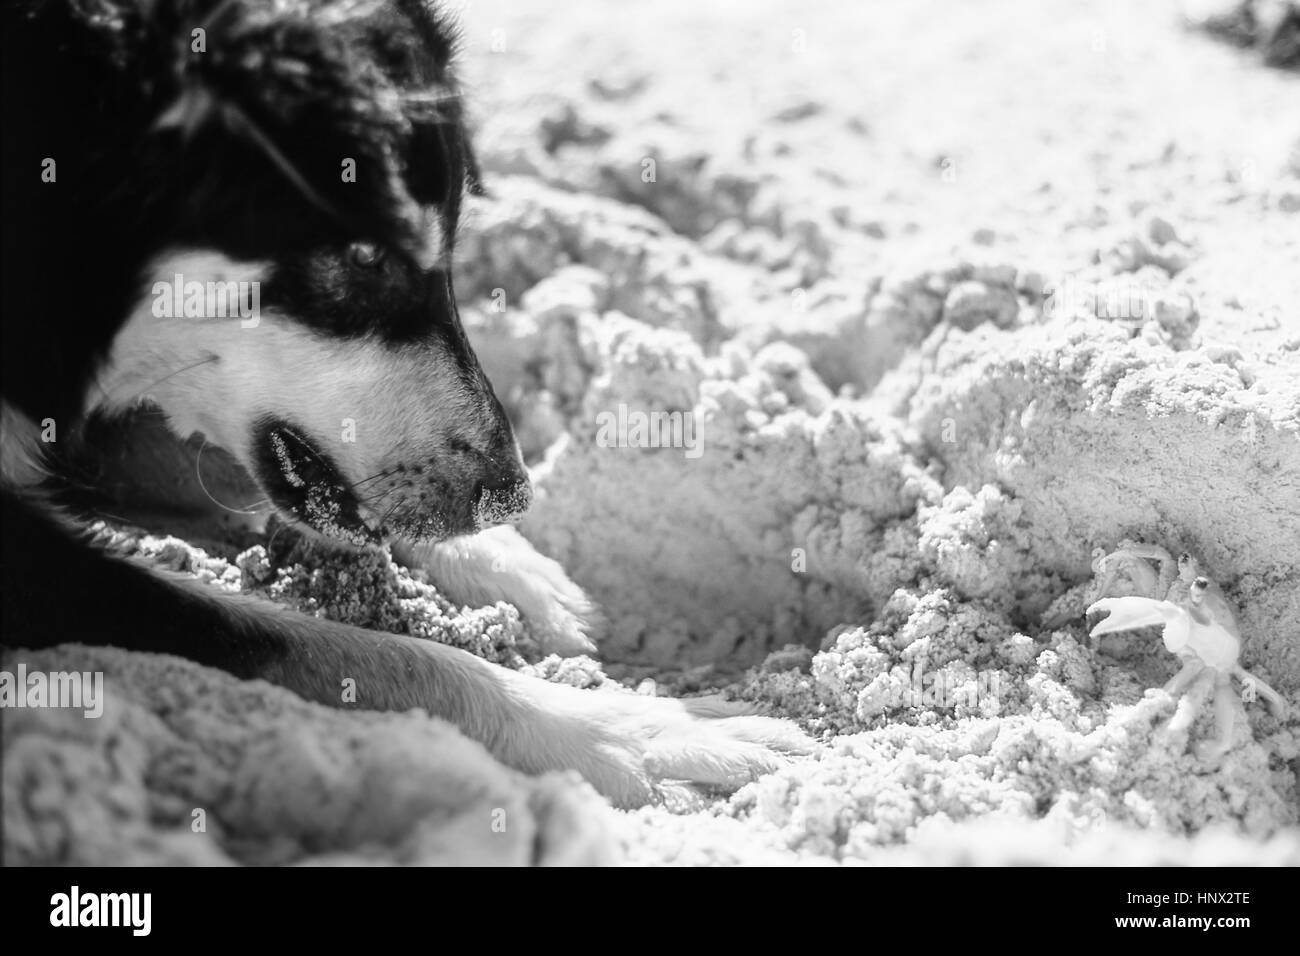 A stand-off  between a German Shepherd MIxed breed dog and a sand crab - Stock Image